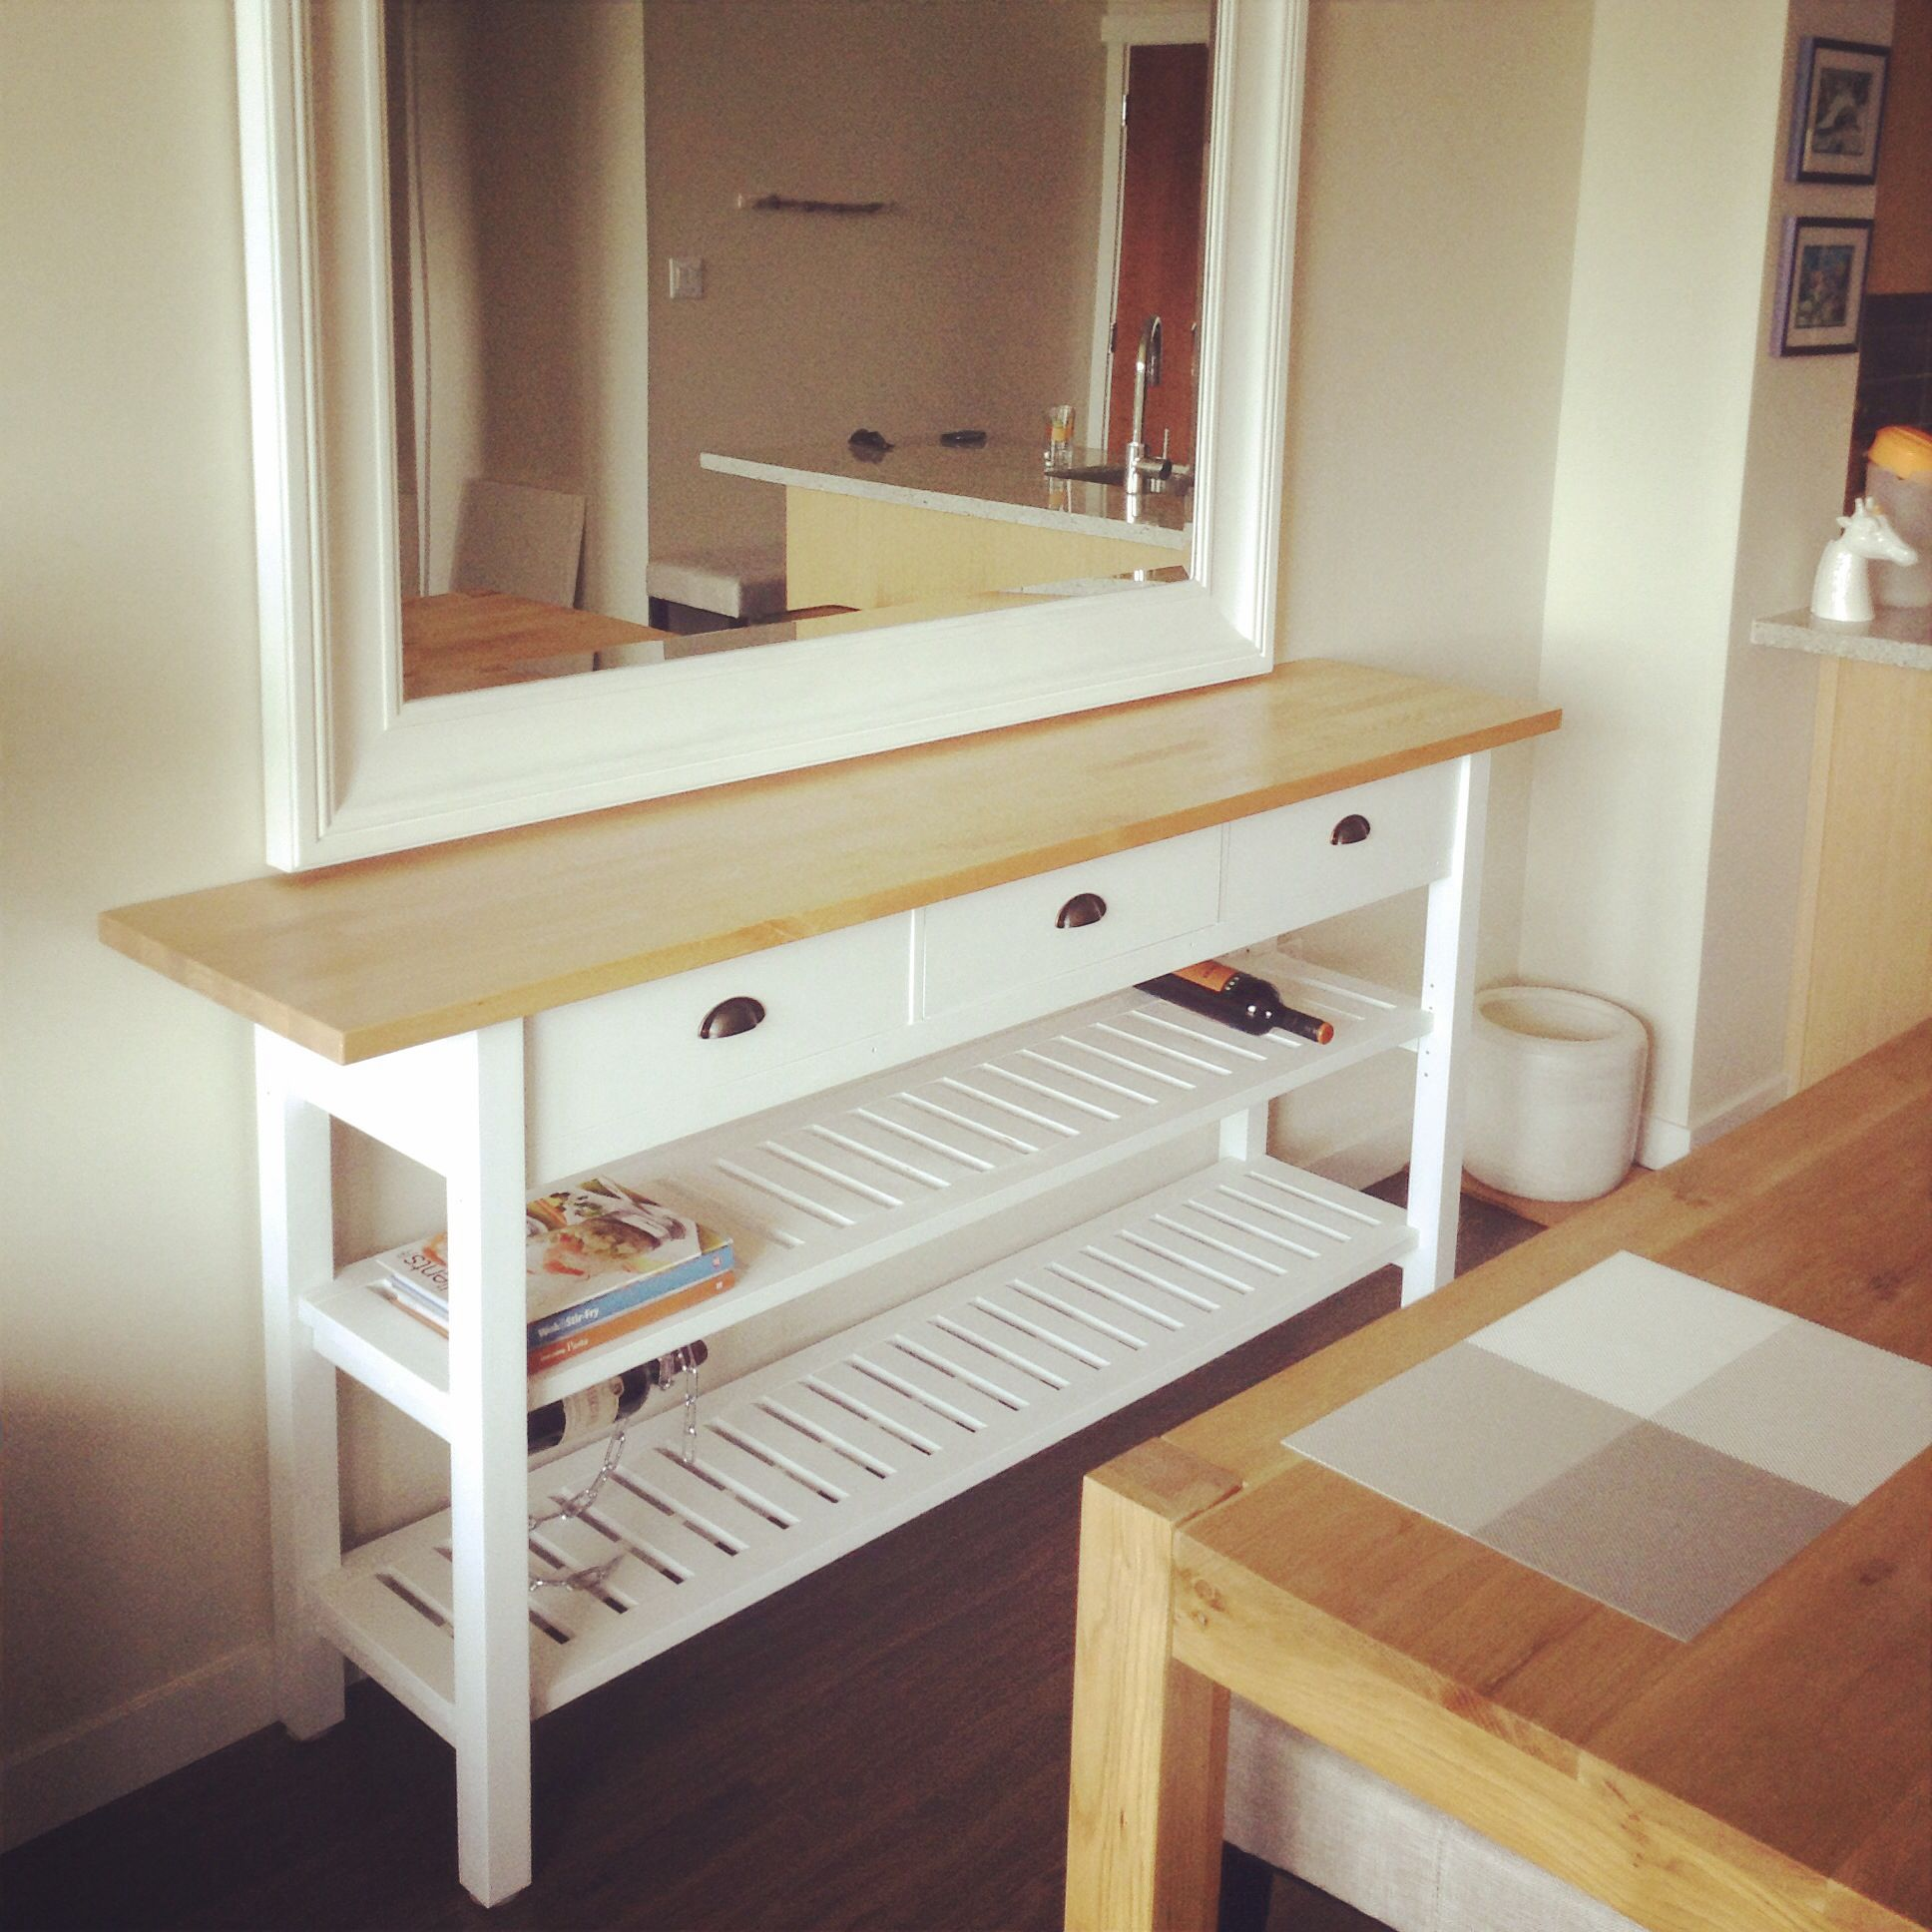 Ikea Norden Küche Beautiful Ikea Norden Sidetable Hack If I Do Say So Myself Diy